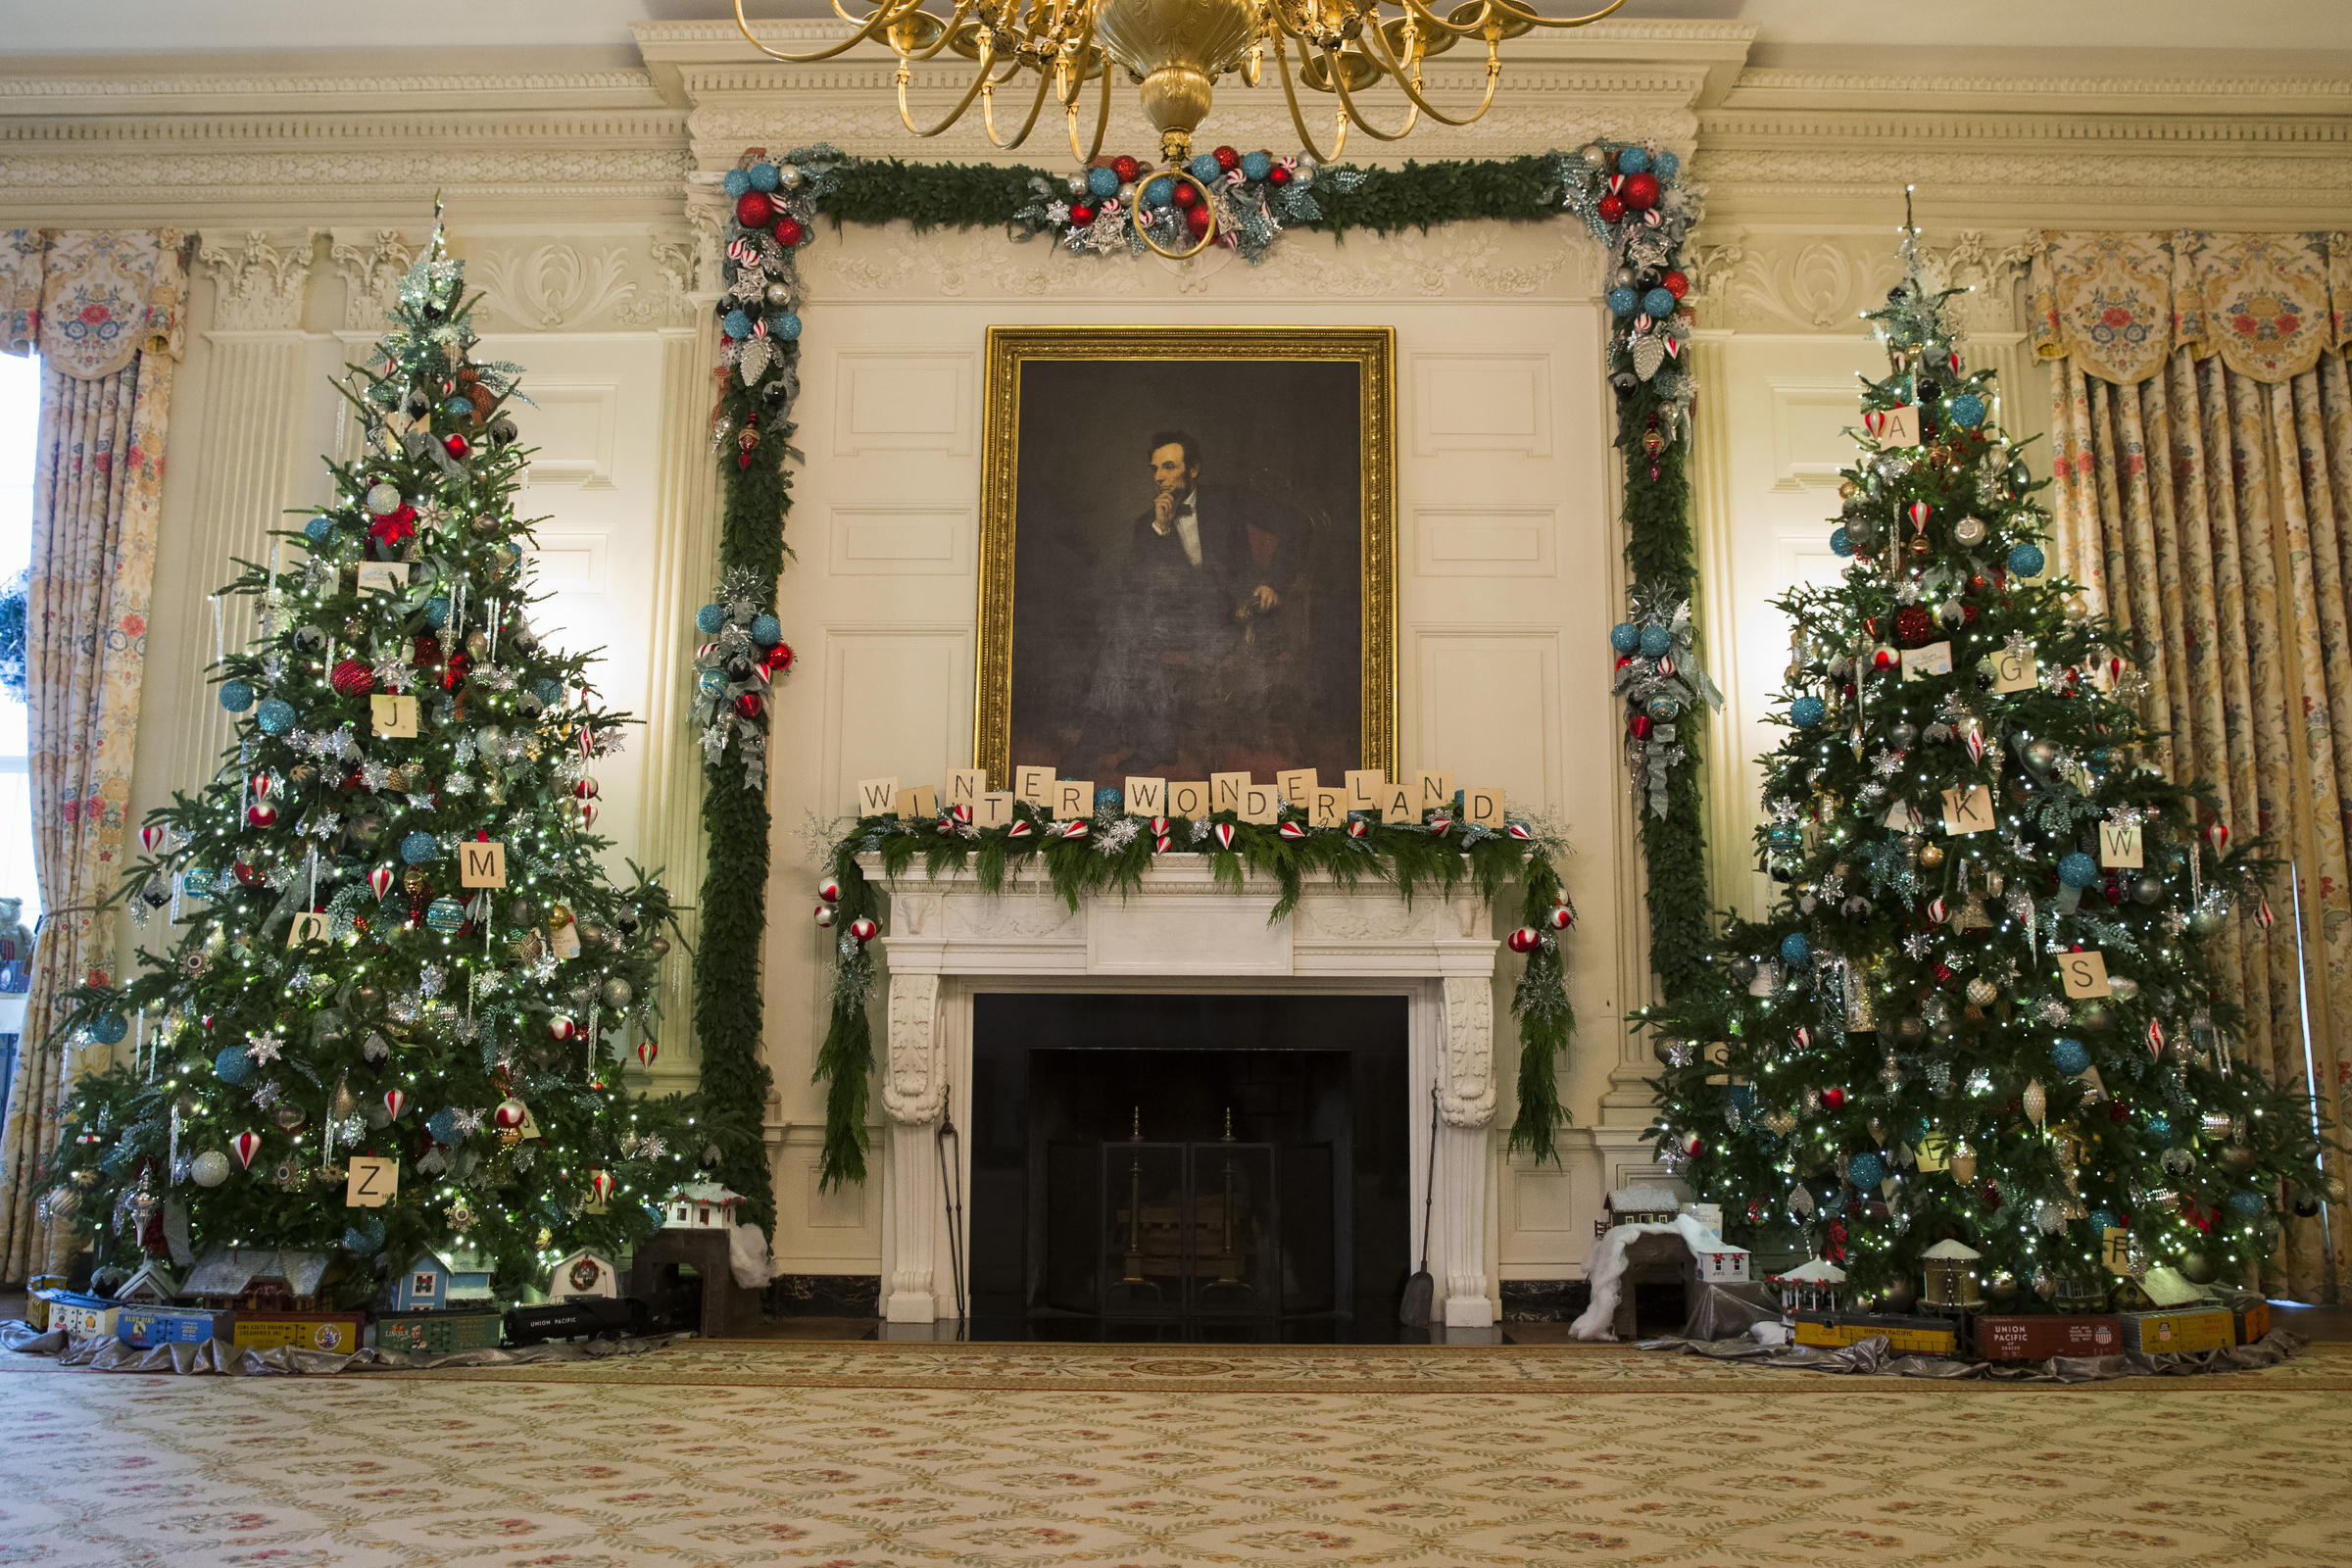 White house christmas ornaments by year - Christmas Trees Flank The Fireplace In The East Room Of The White House Every Year About 100 Volunteers Decorate The White House With Garlands